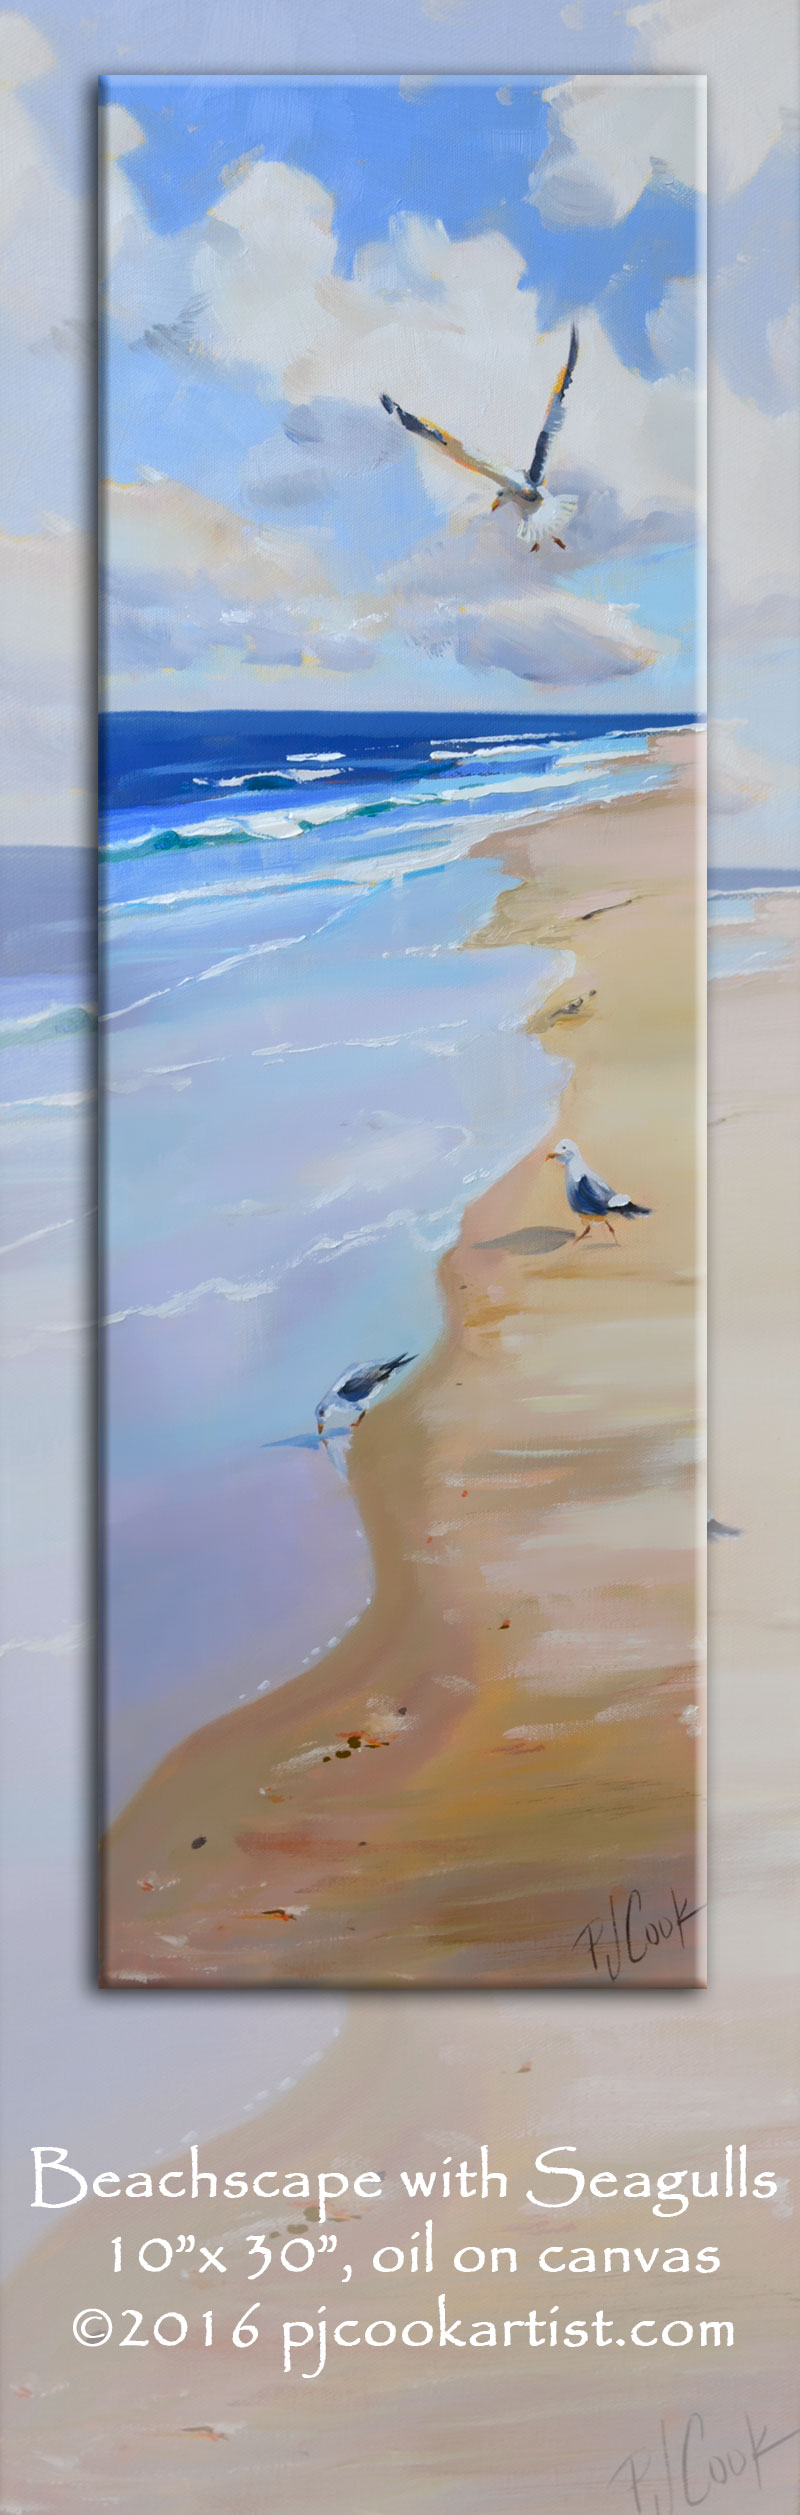 Walk this beach is an Oil on canvas of beachscape with seagulls and ocean waves 10x30 oil on canvas